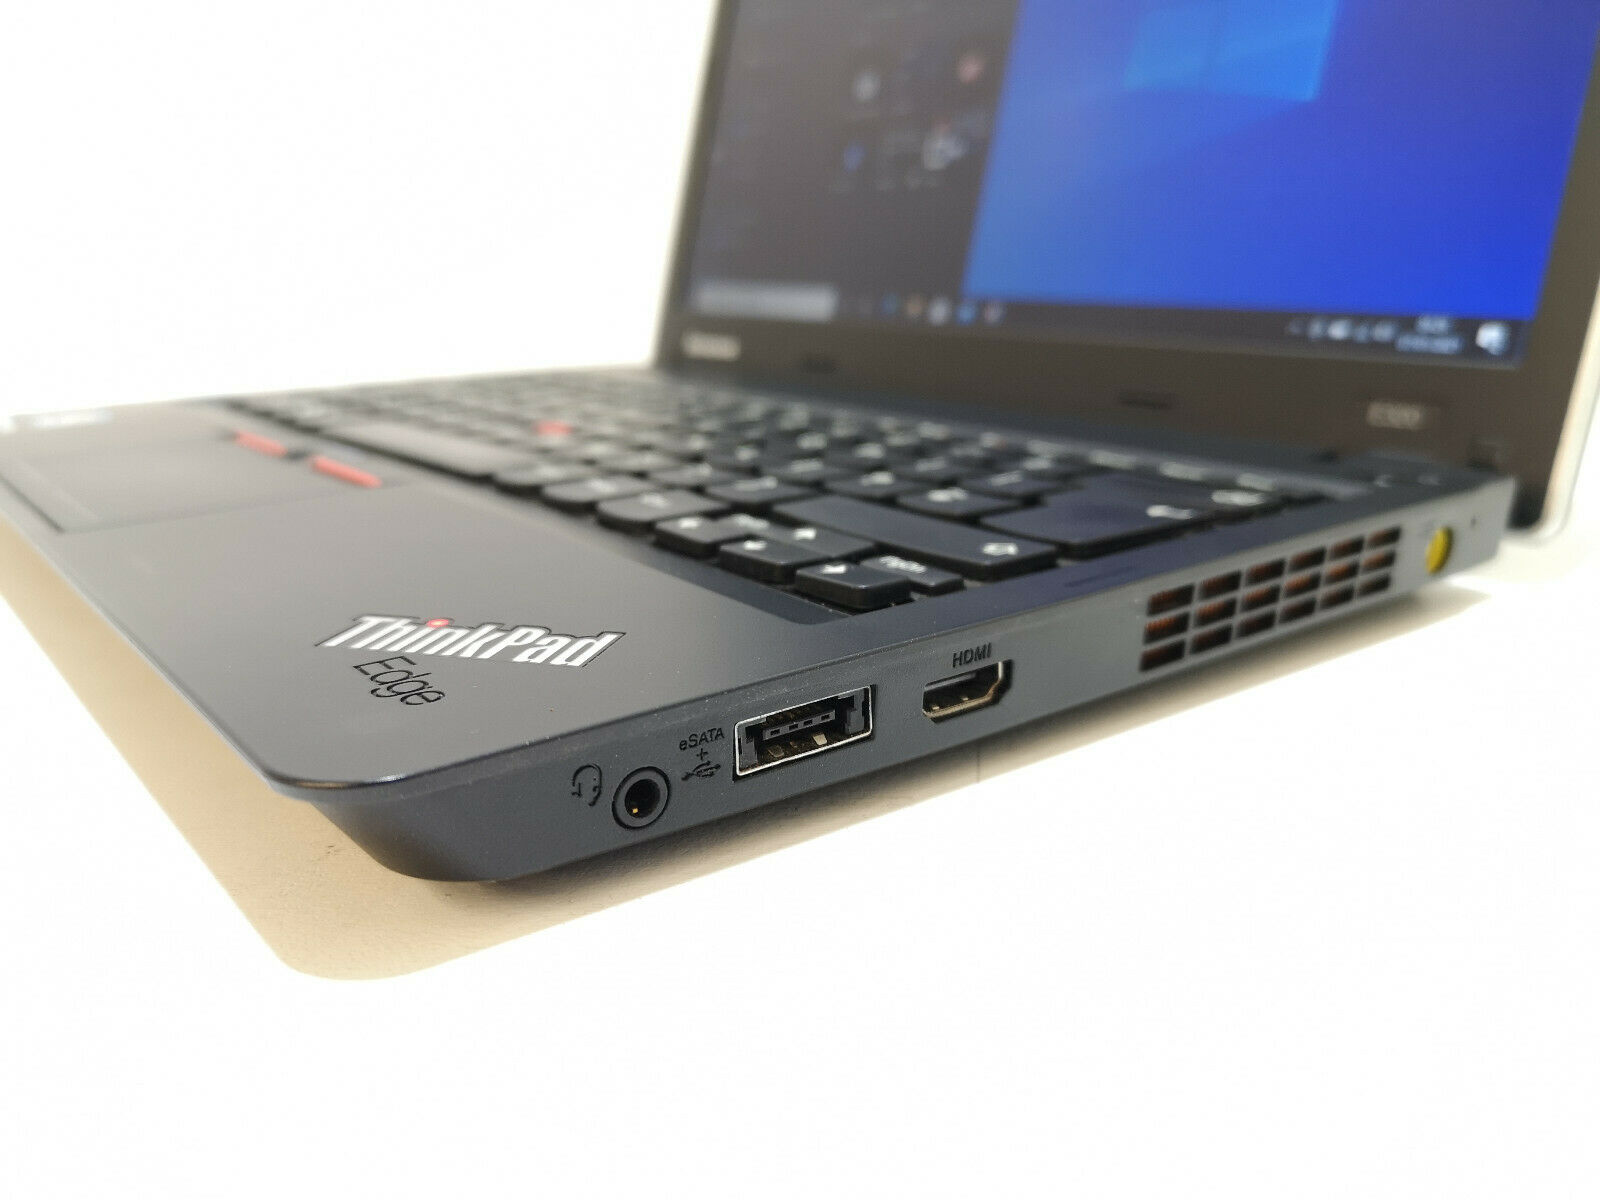 Lenovo ThinkPad E320 No 4